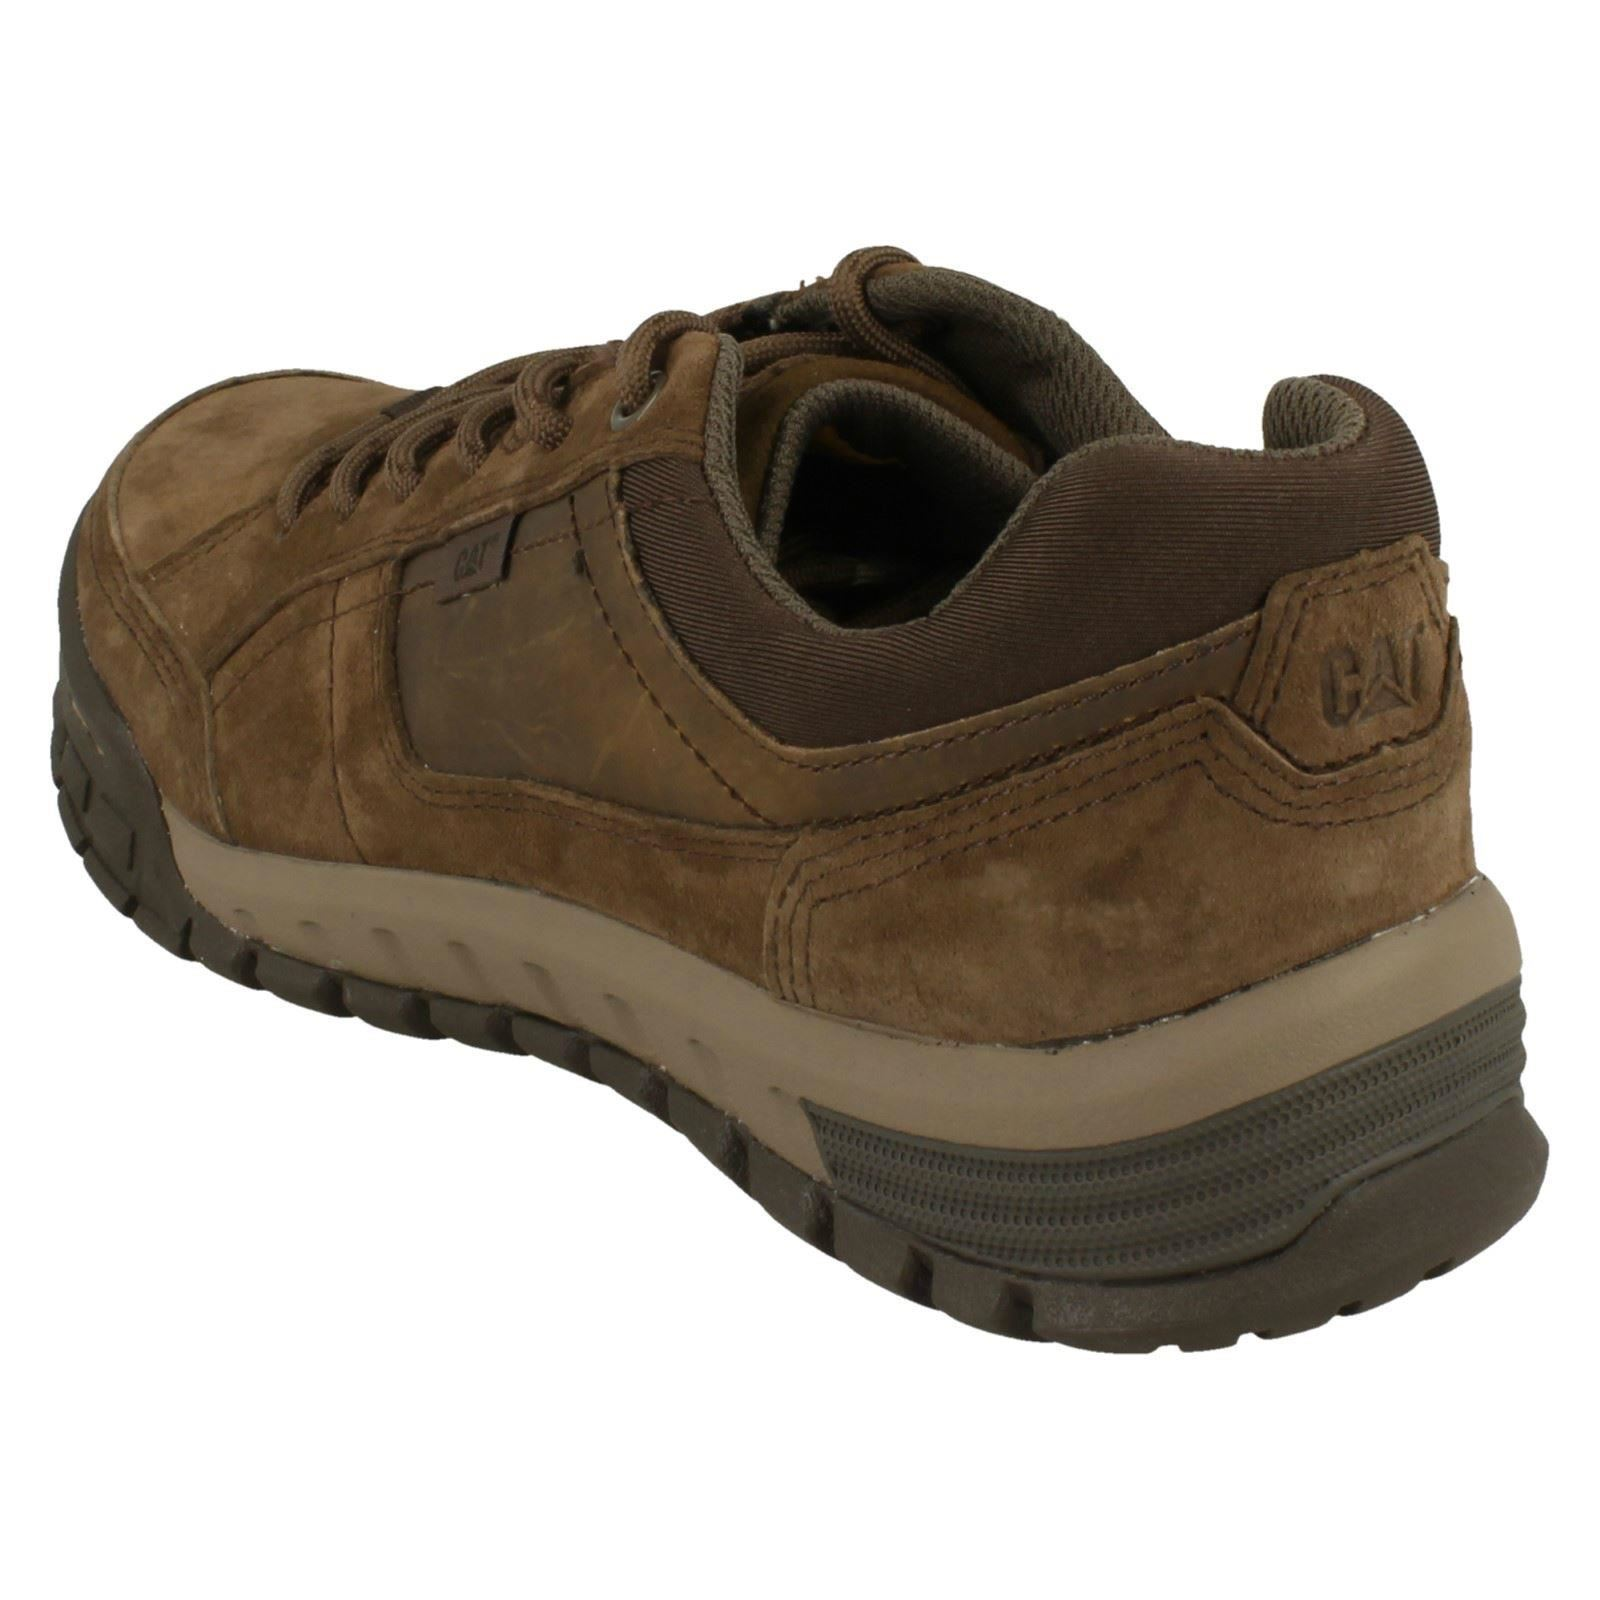 Uomo Caterpillar Walking Schuhes Schuhes Walking Sentinel ff94a2